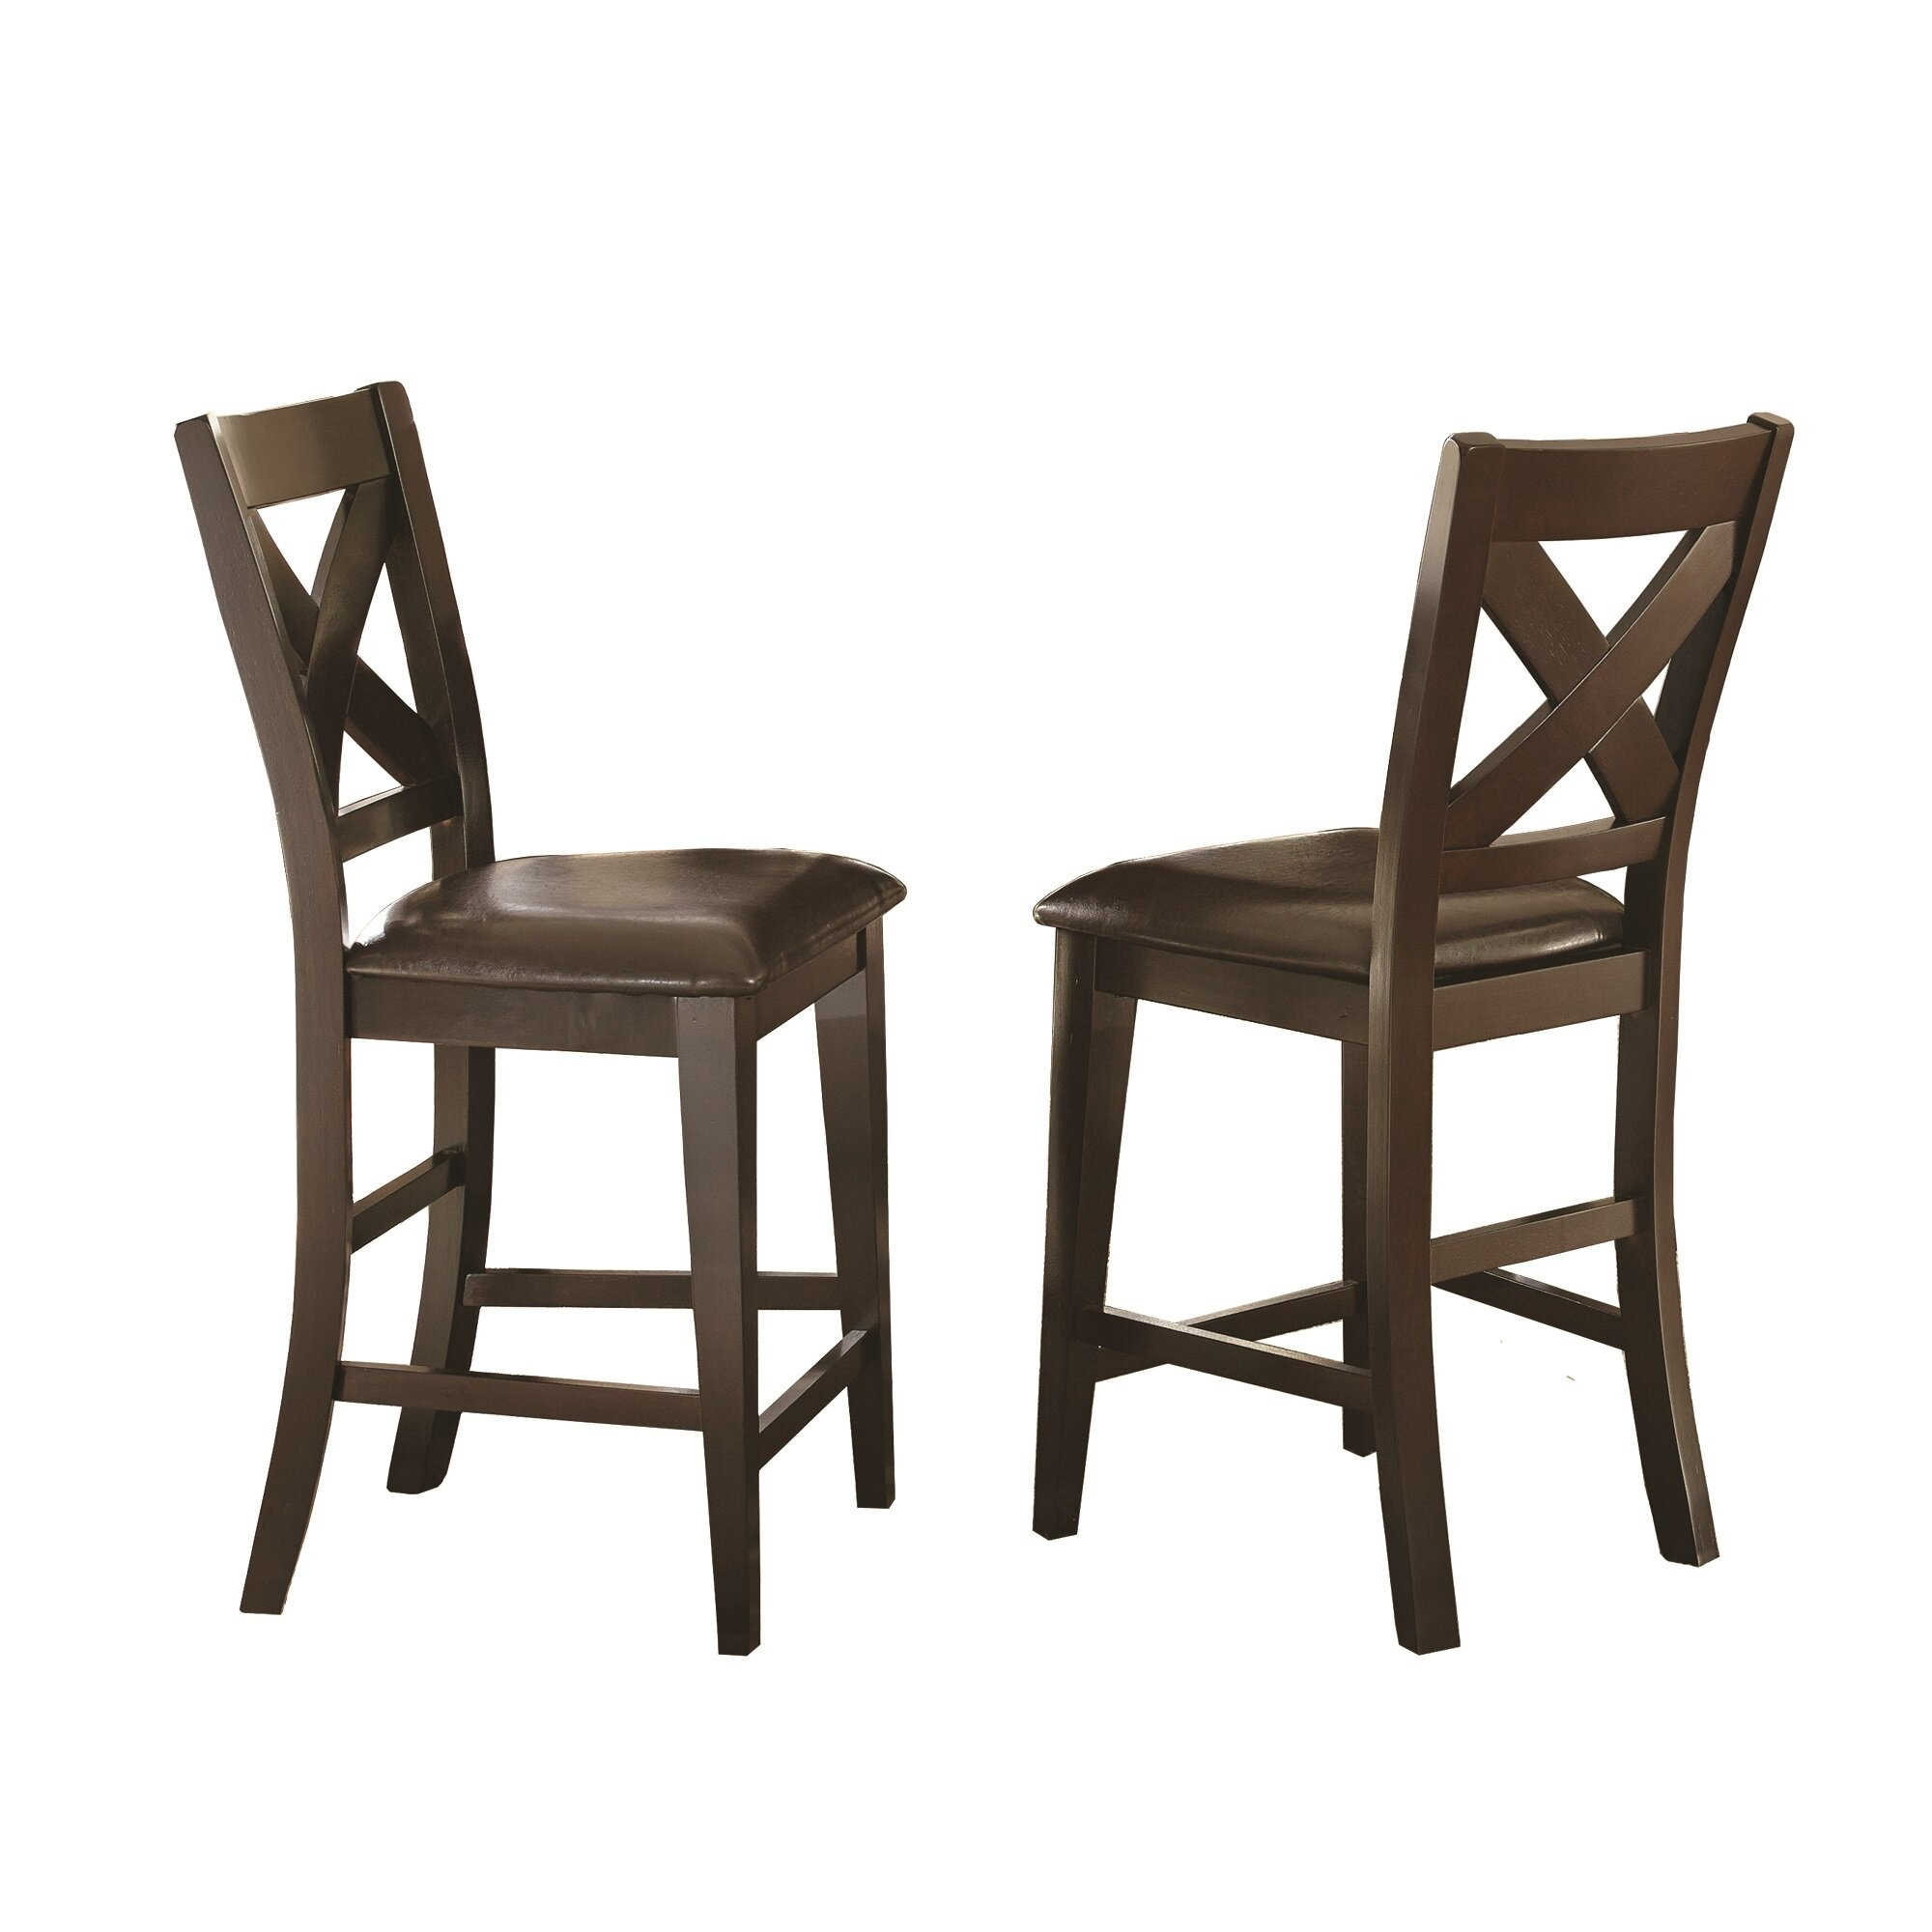 Steve silver furniture crosspointe 9 piece dining set for Dining room tables 9 piece